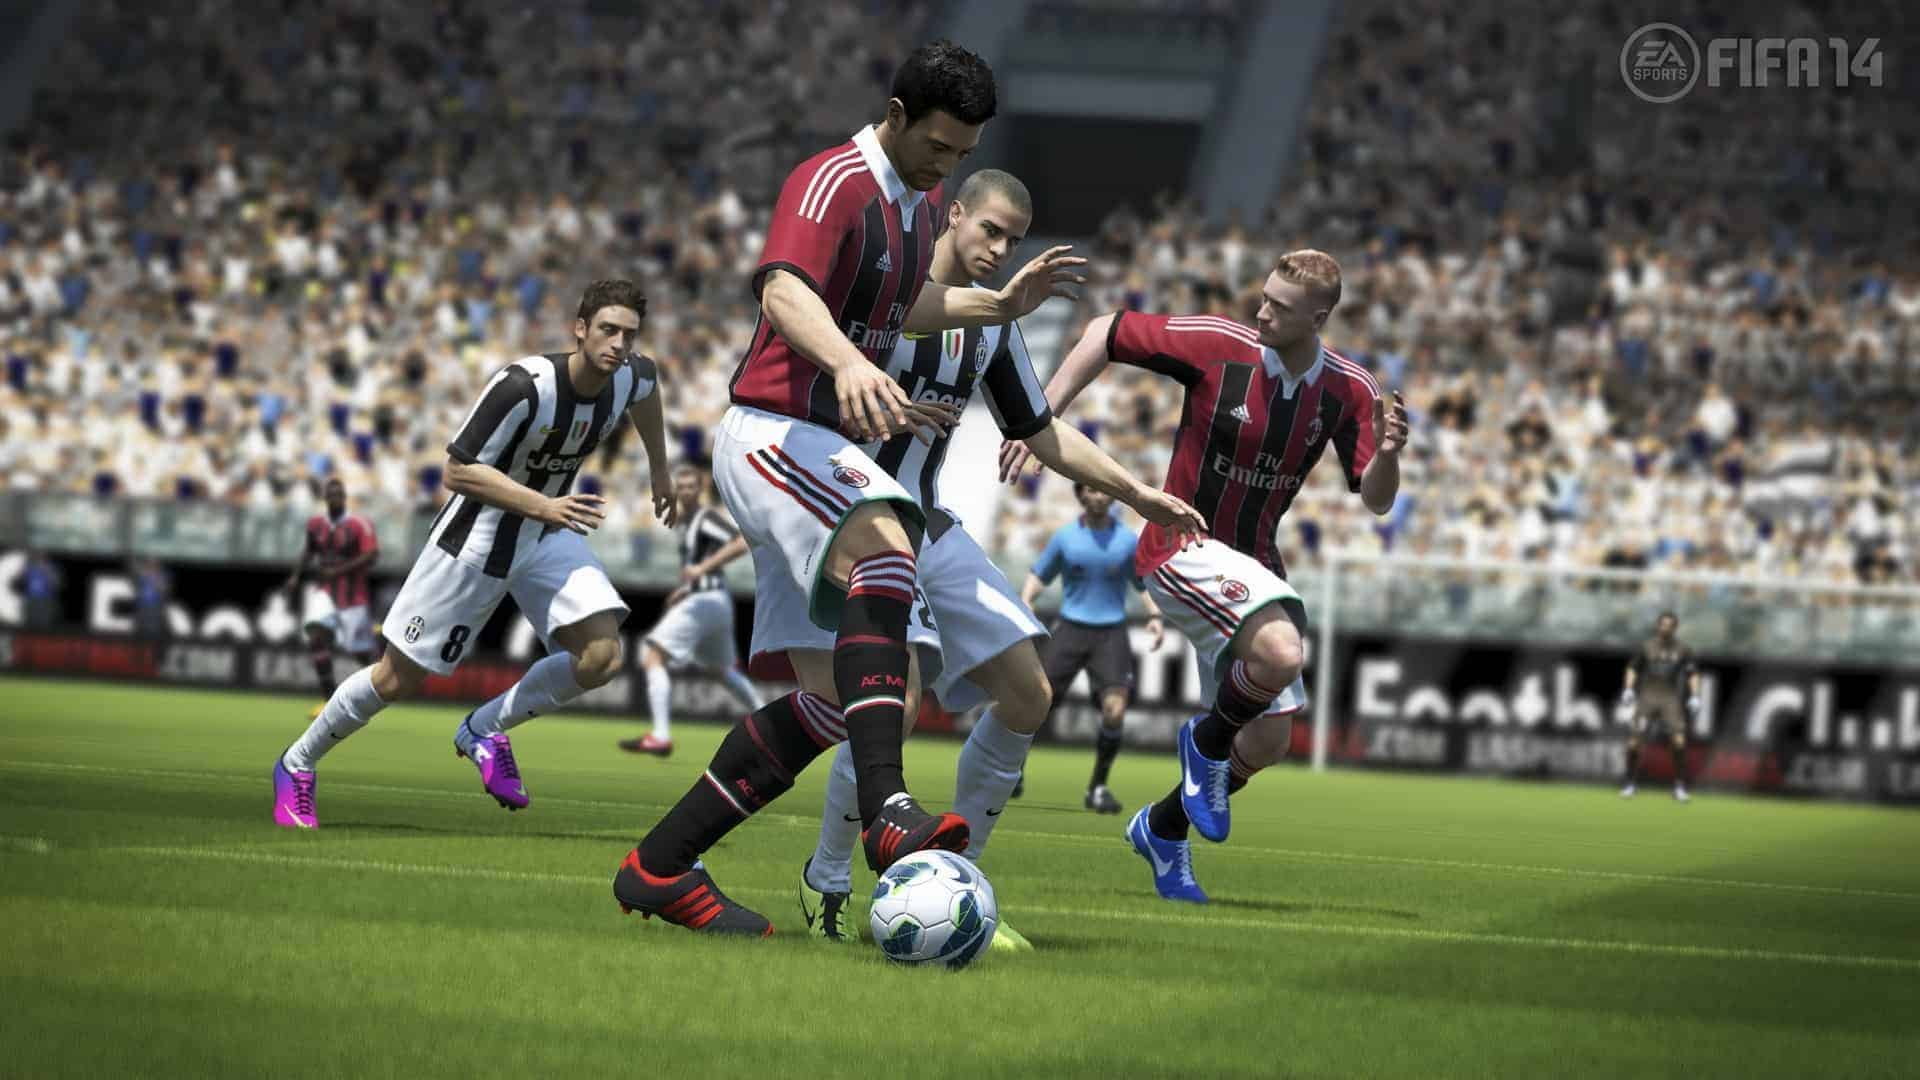 FIFA_14_Game_HD_Wallpaper_08_1920x1080